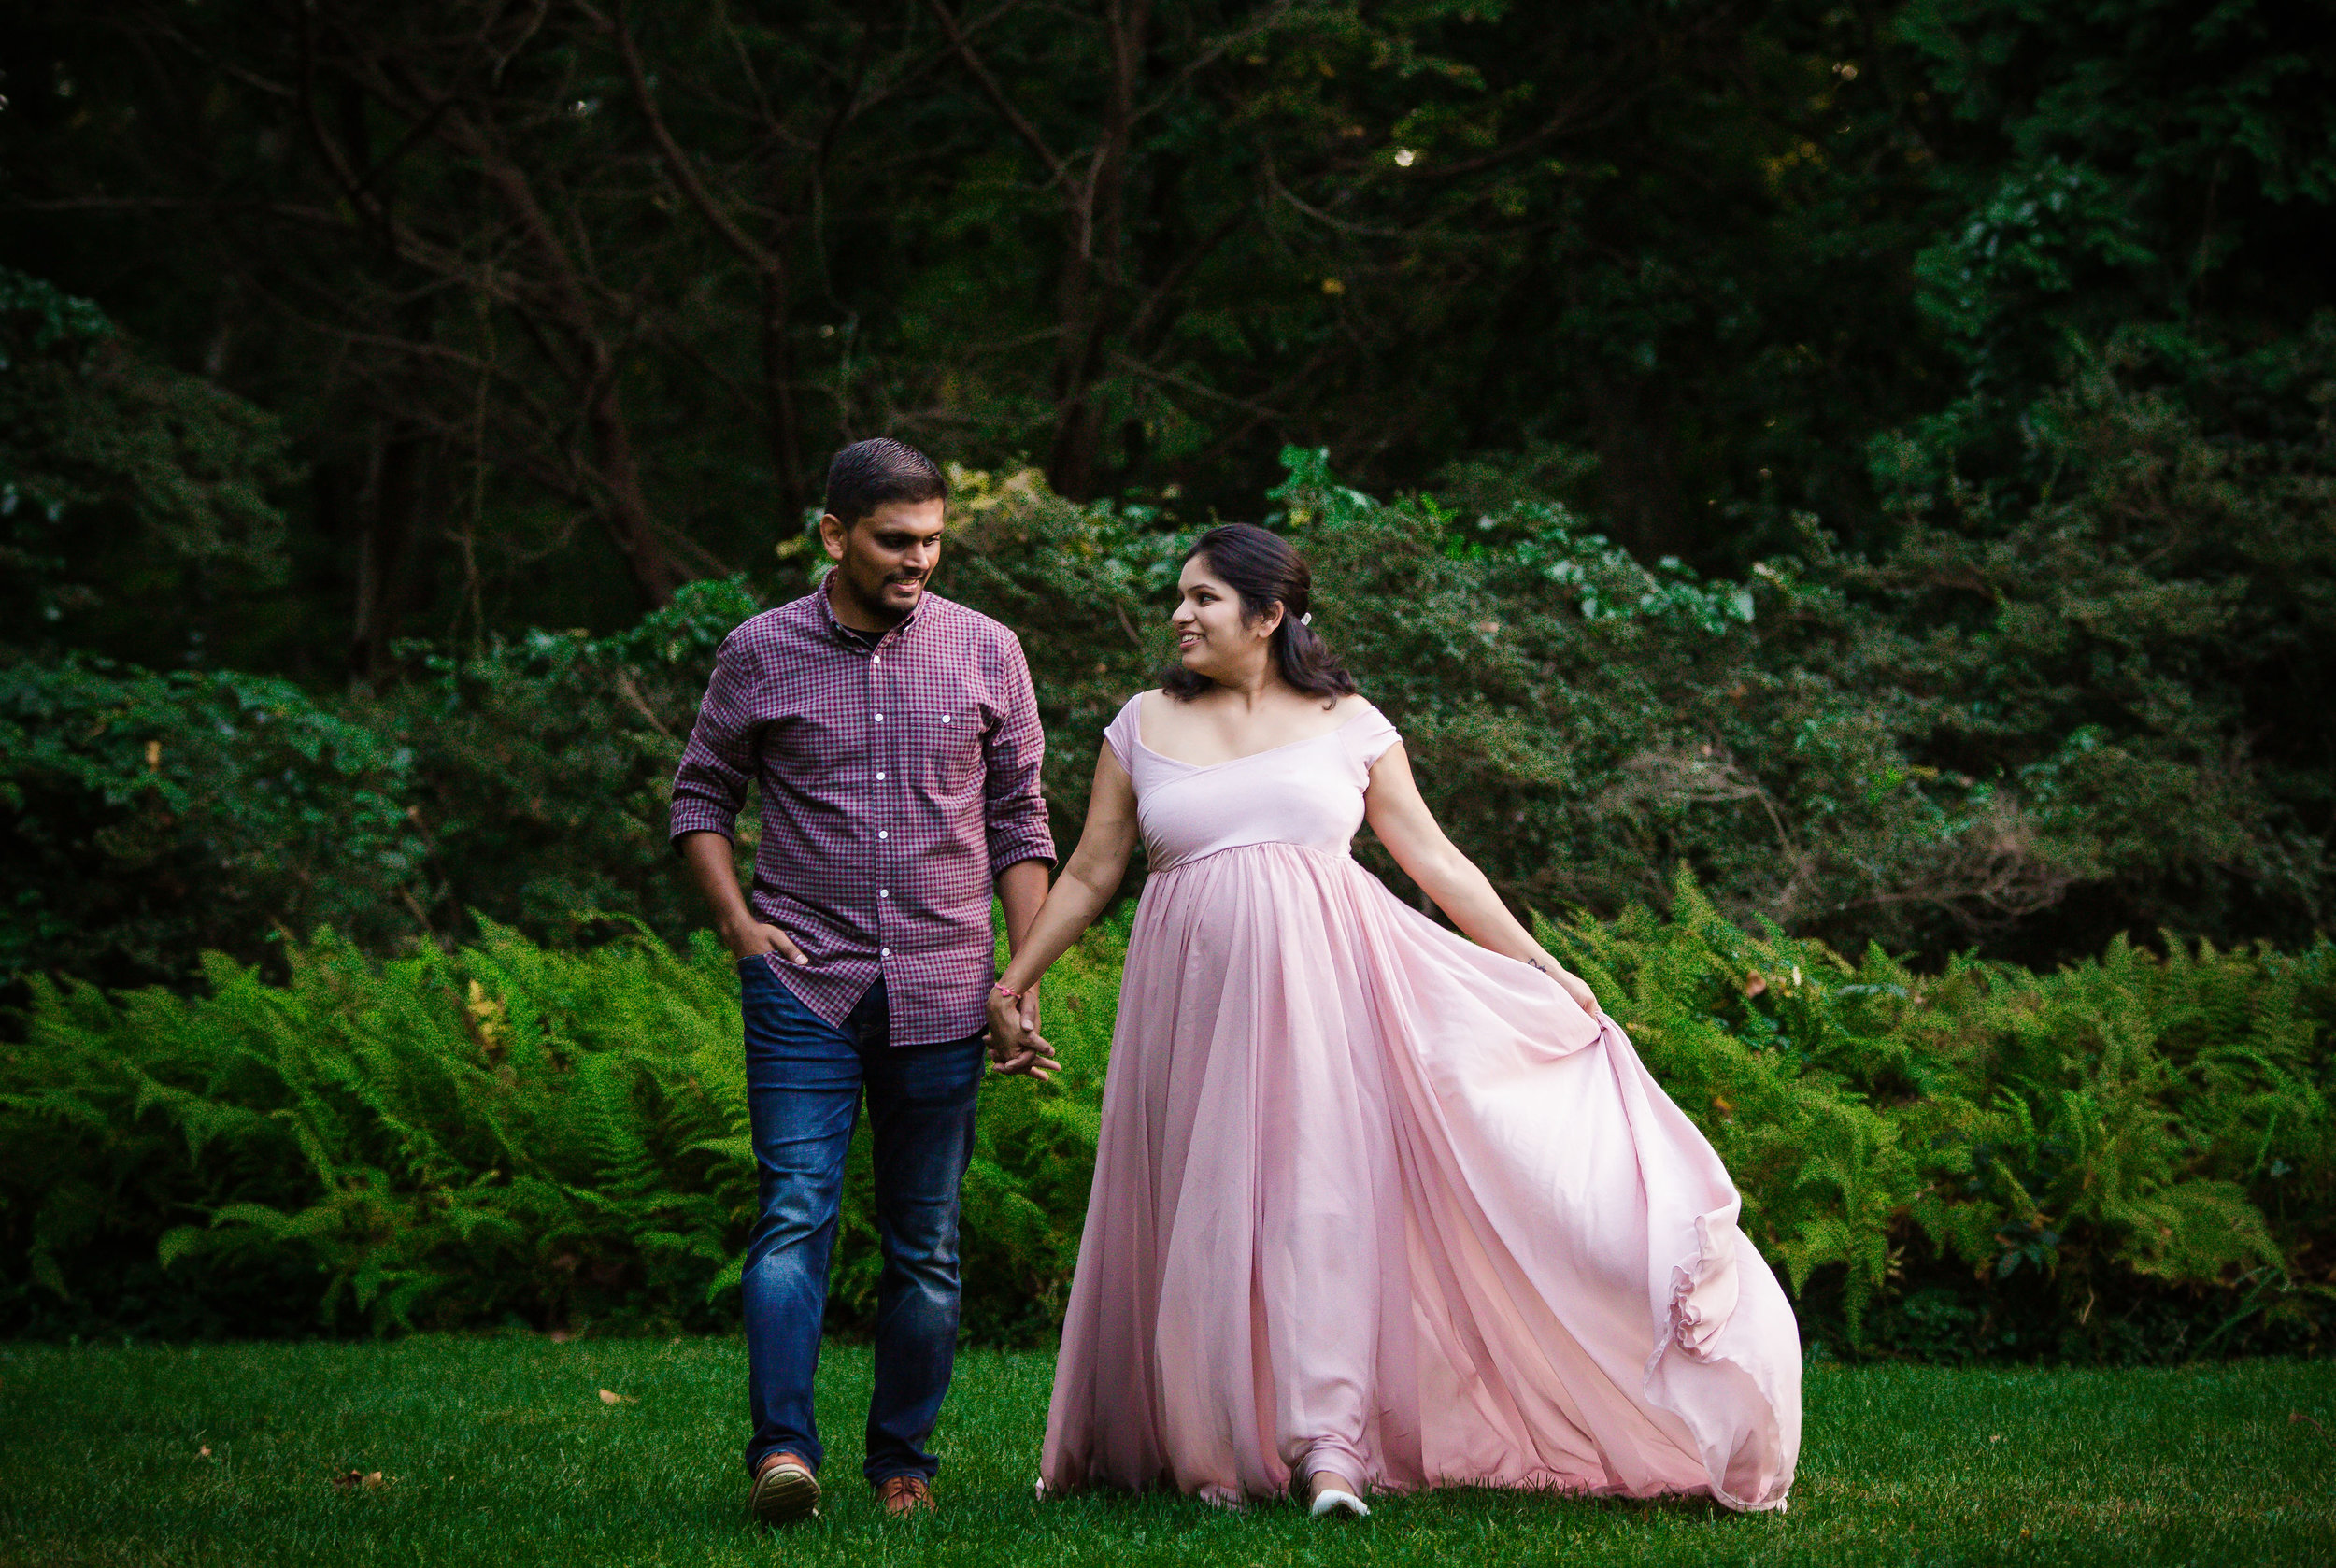 indian-maternity-session-at-sayen-gardens-in-hamilton-new-jersey